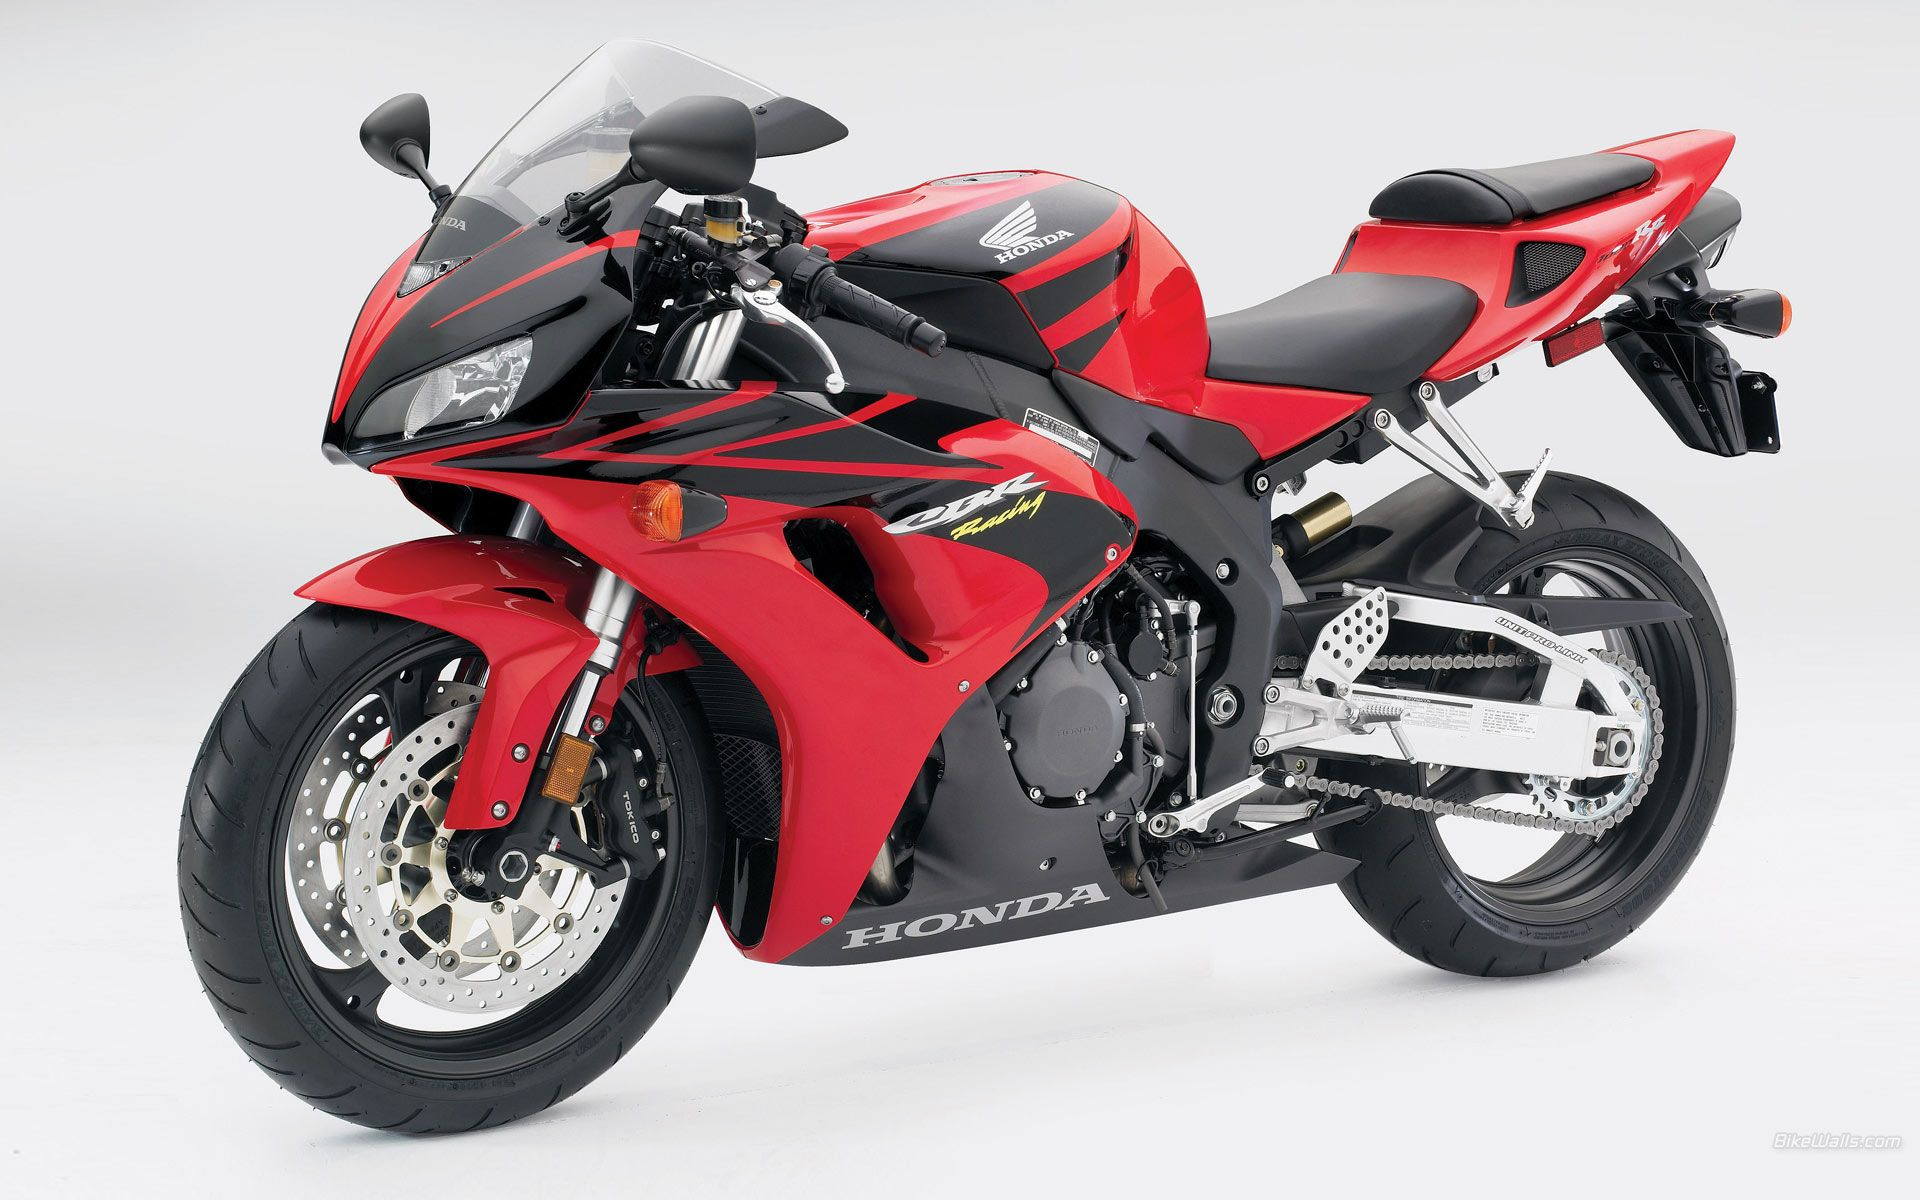 Free honda motorcycle wallpaper with 1280 x 960 resolution